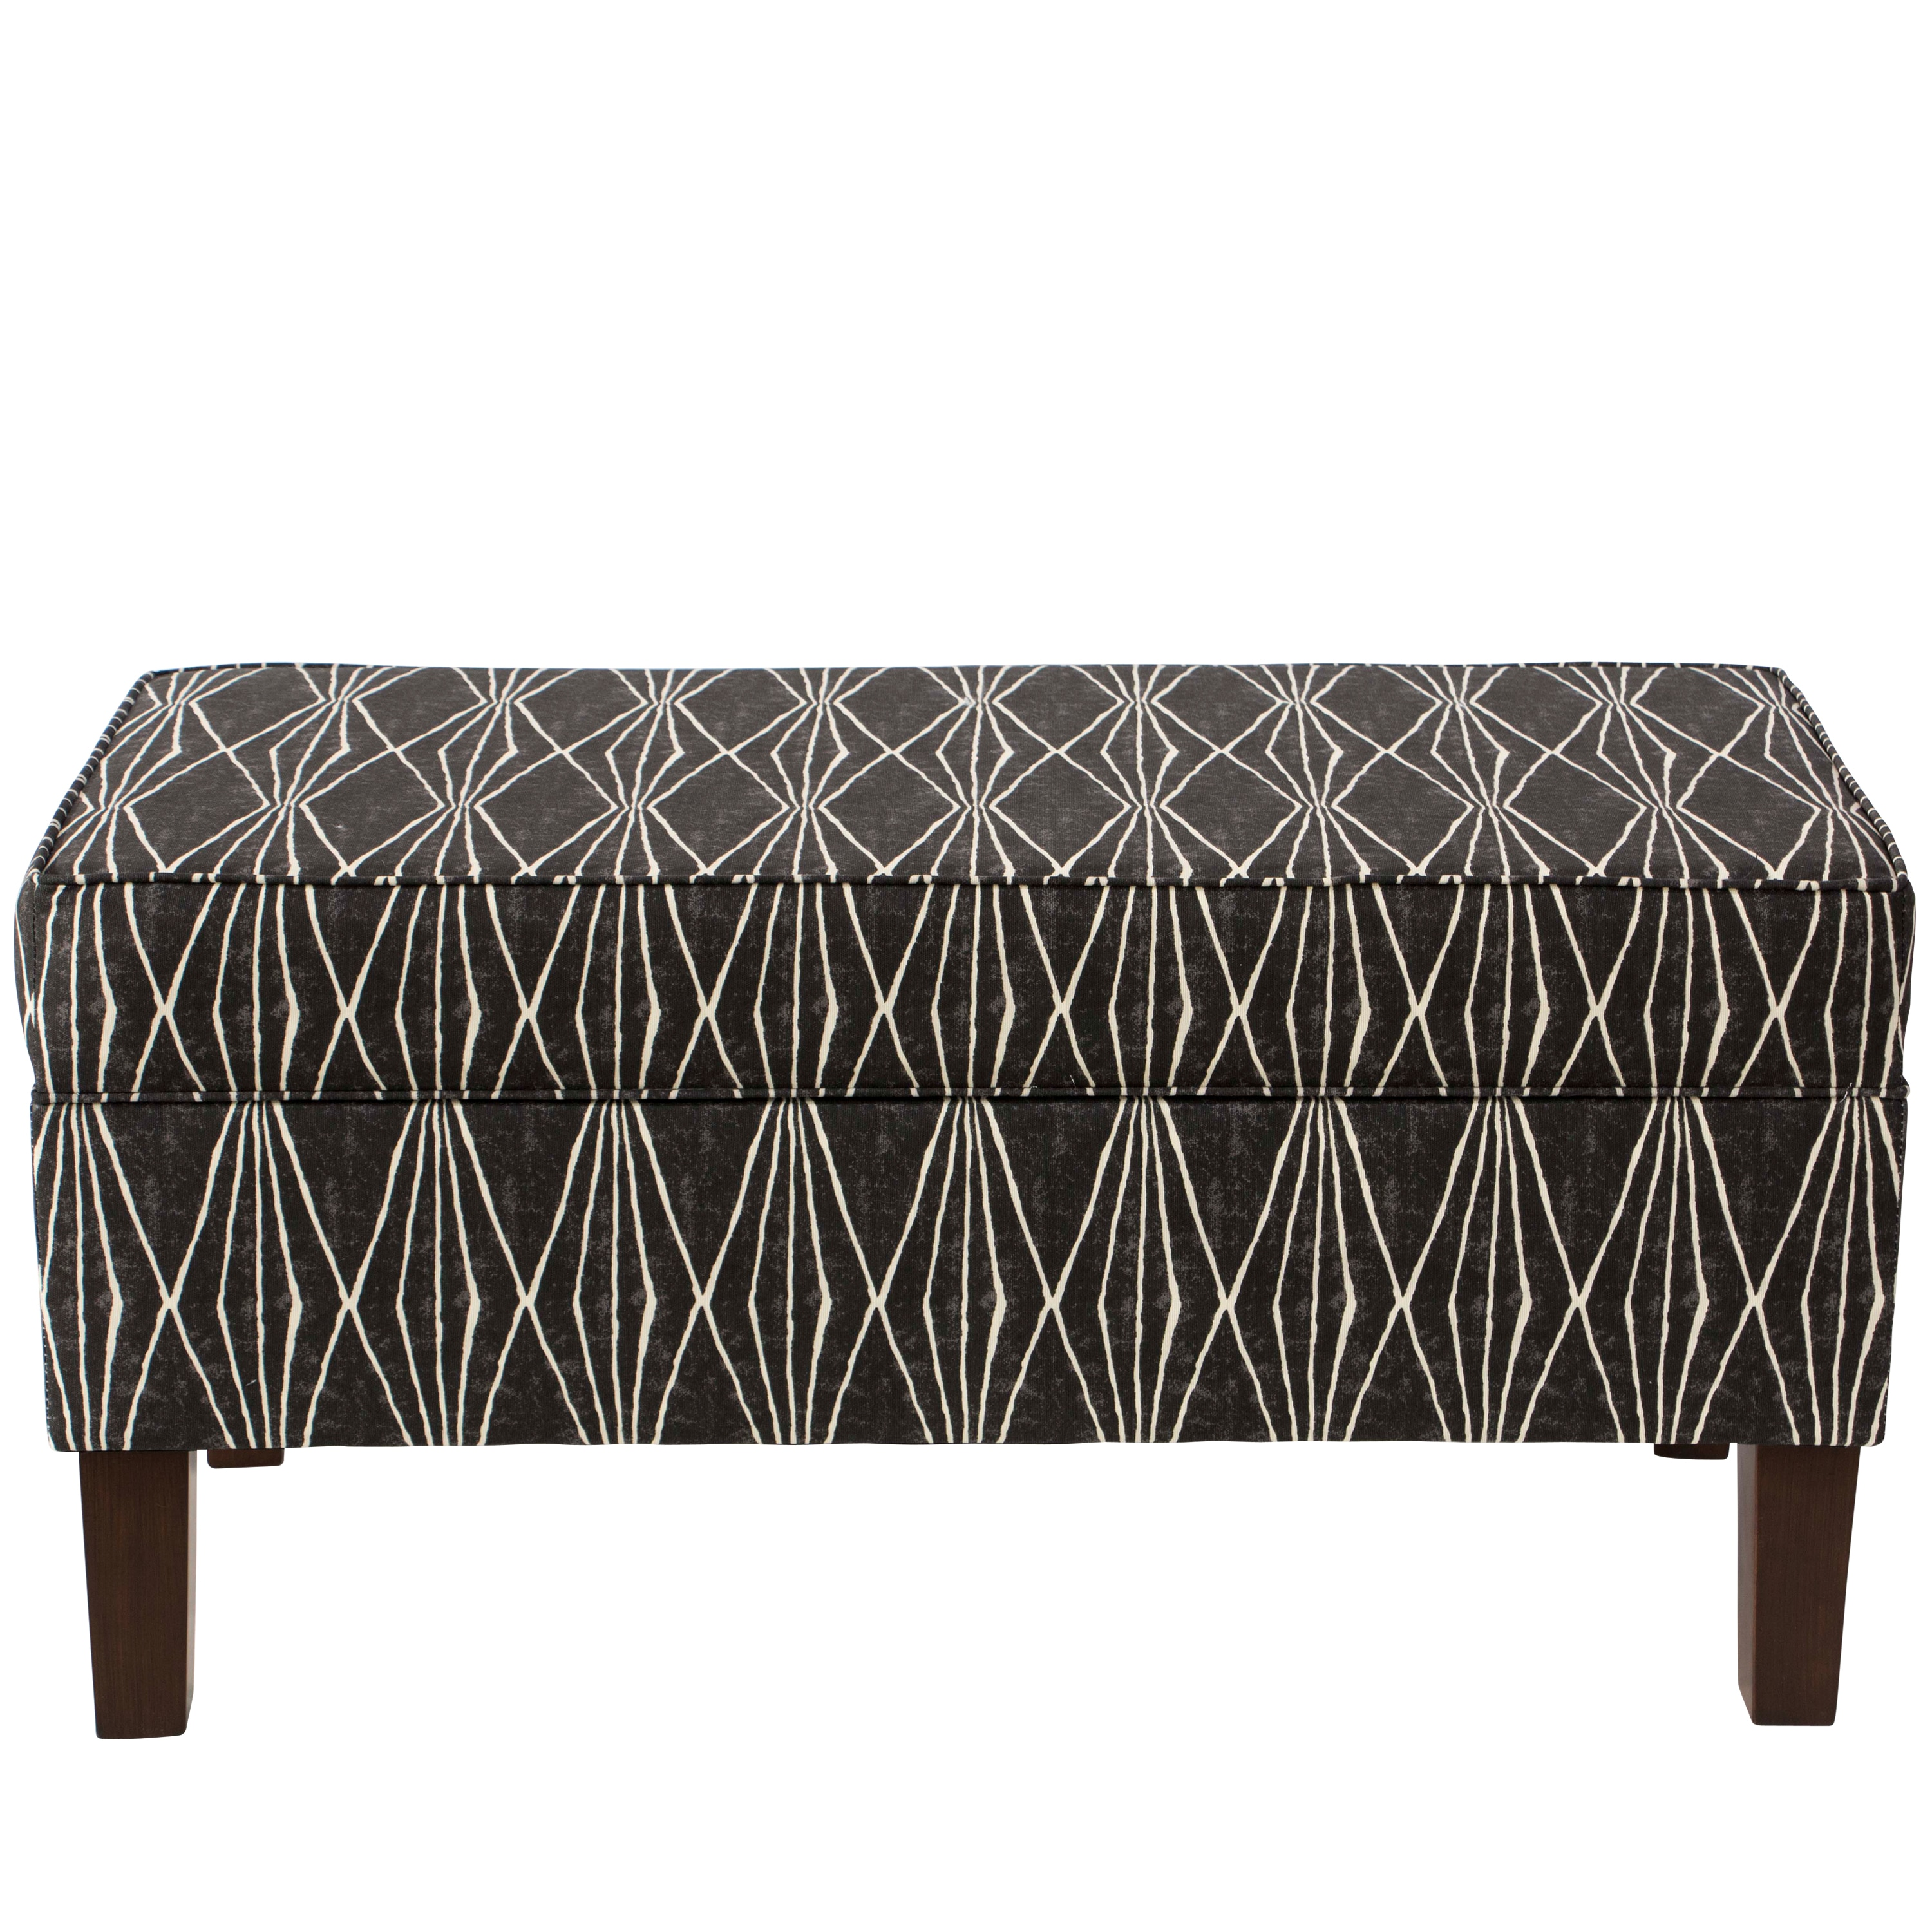 Shop Skyline Furniture Storage Bench In Hand Shapes Coal Free